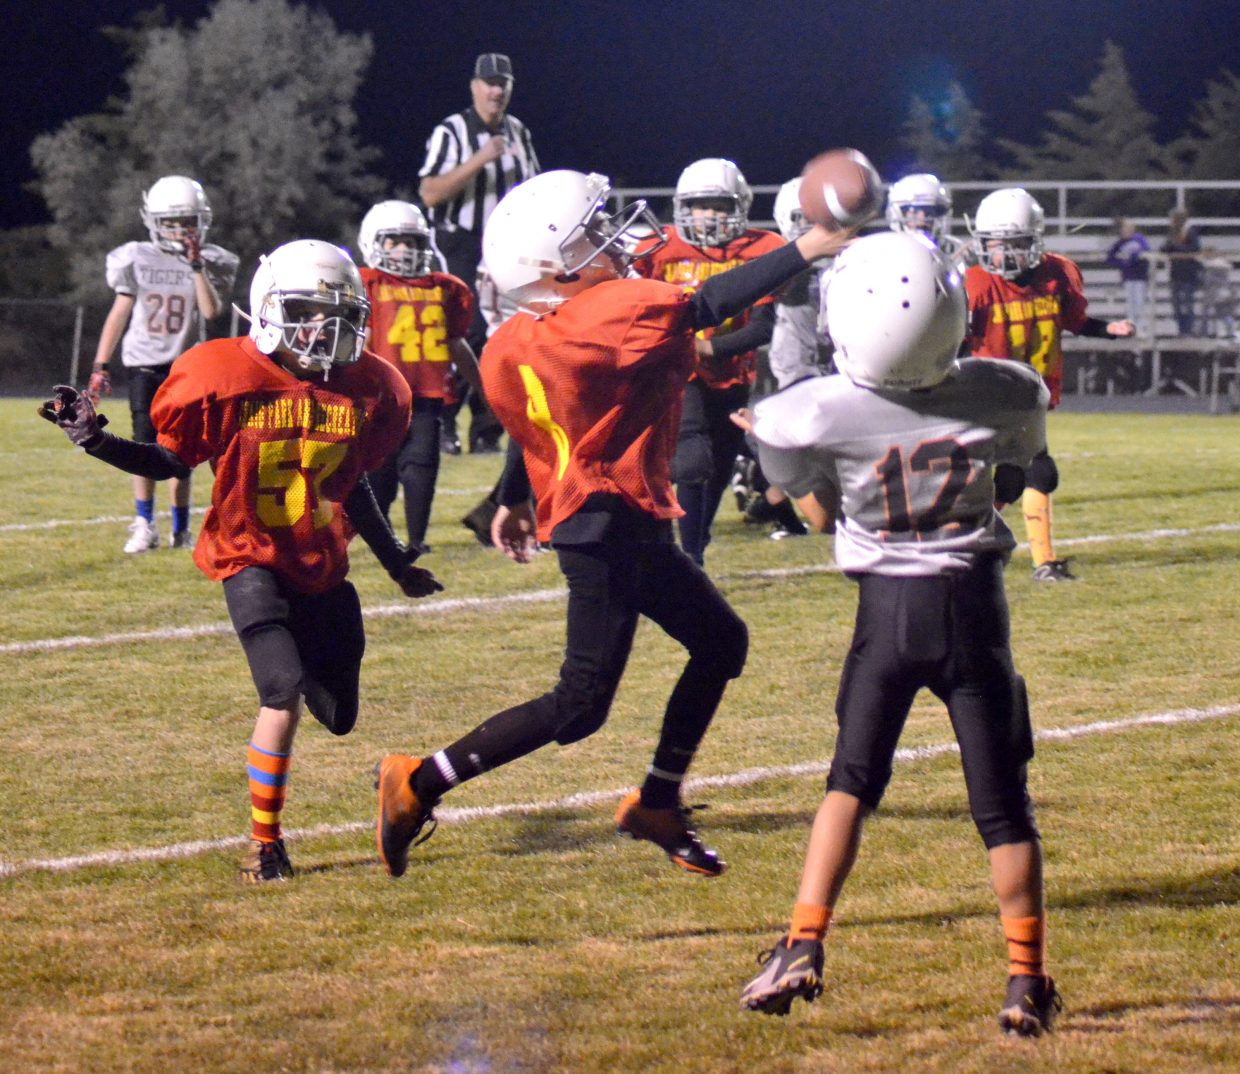 The Chiefs' Reece Weston leaps in for a possible interception against Hayden during the Craig Parks and Recreation Doak Walker playoffs.